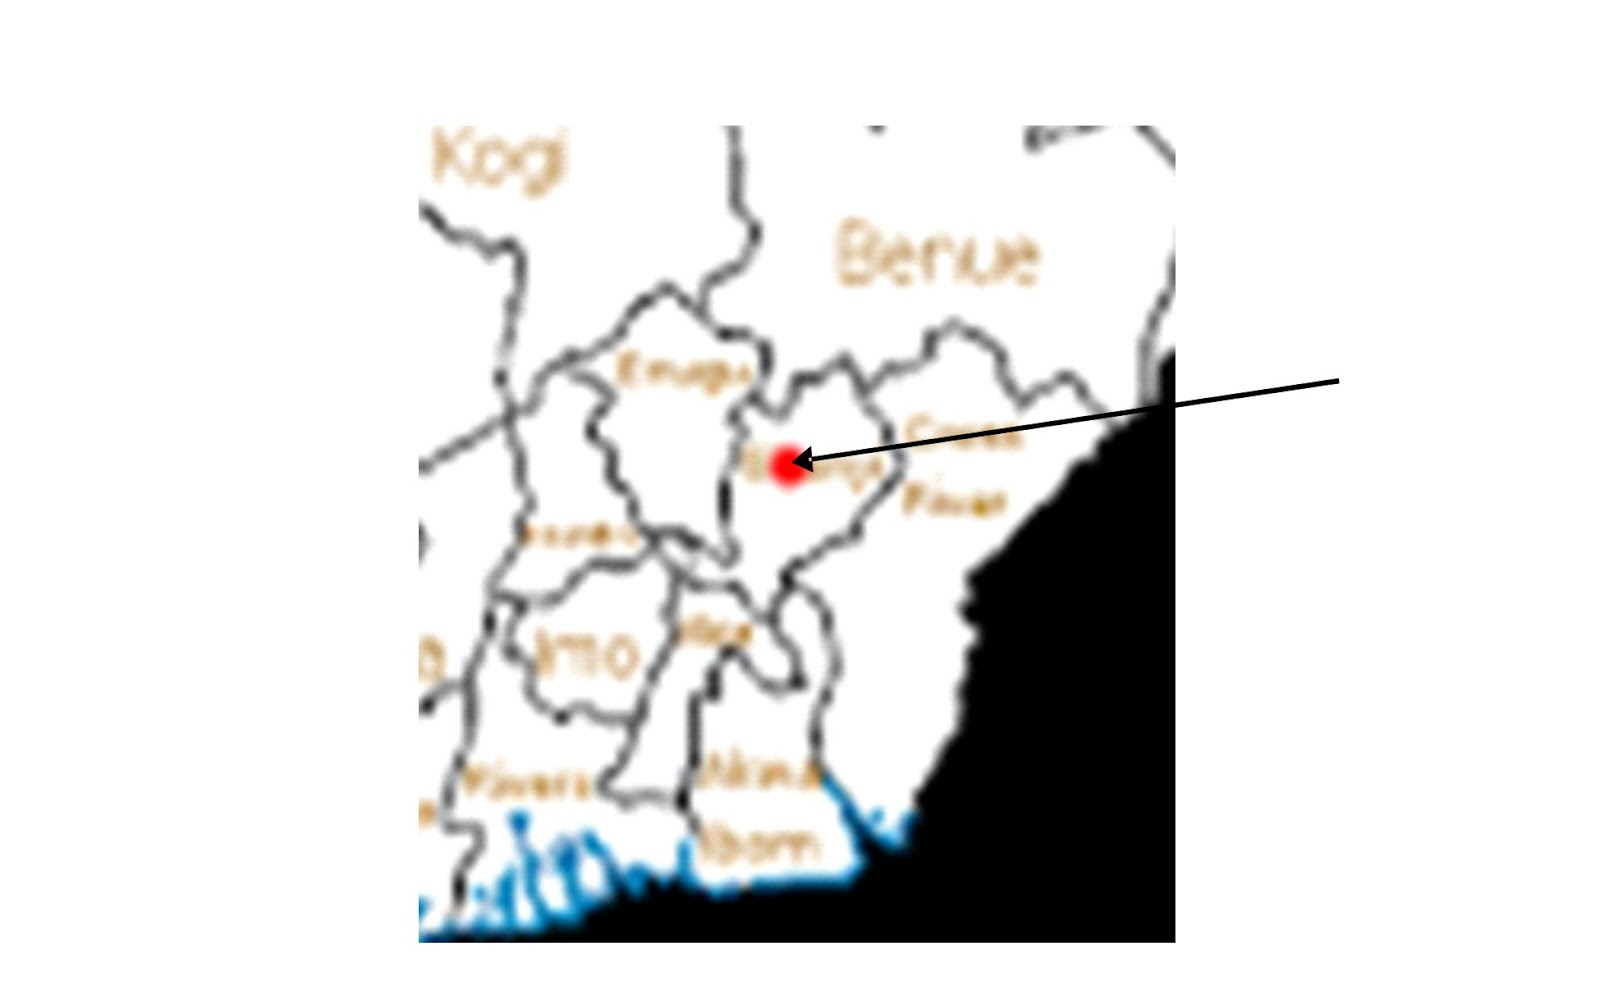 quite enigmatic apart from all the states mentioned looking at the nigeria map shown above it is apparent that benue and cross river are bounded behind